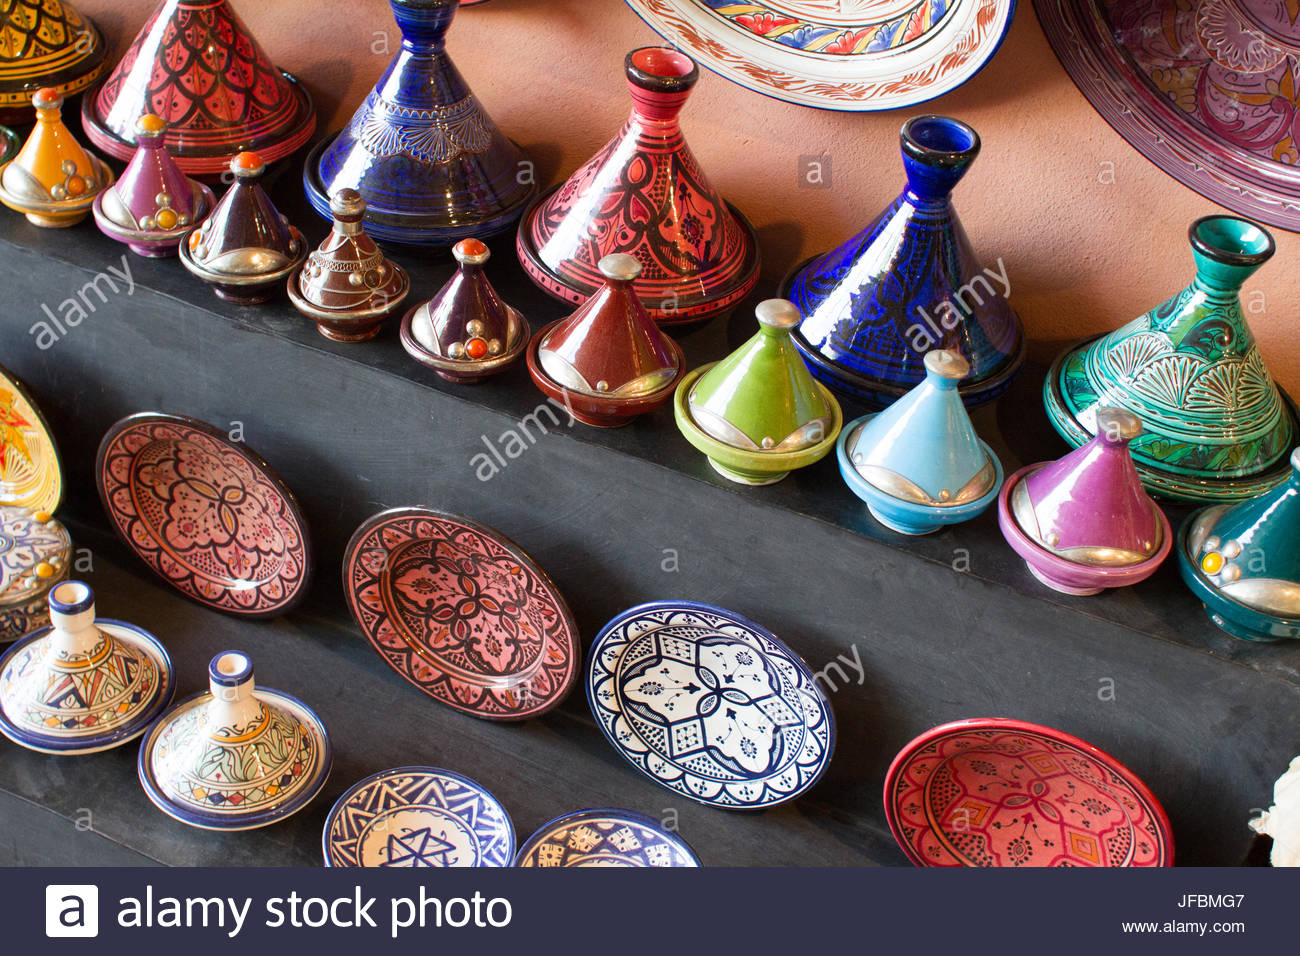 Colorful tagines and other pottery dishes for sale. - Stock Image